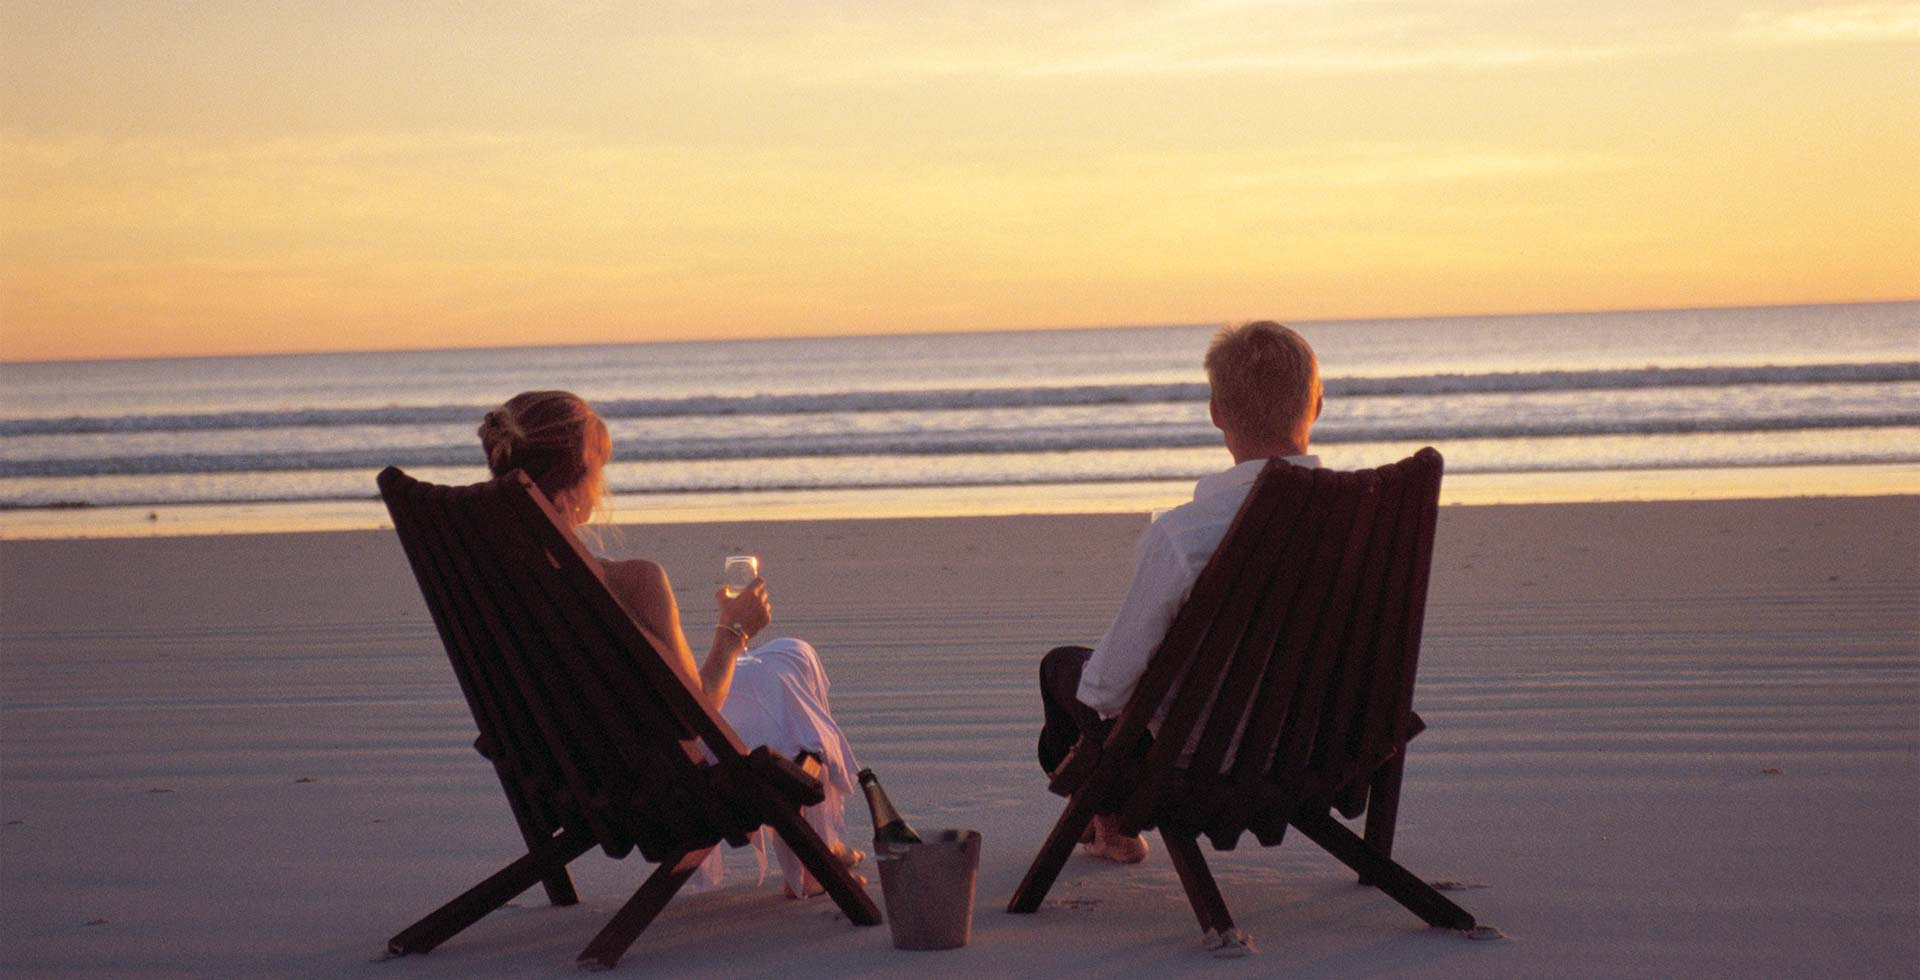 Sunset at Cable Beach in Broome is the perfect getaway